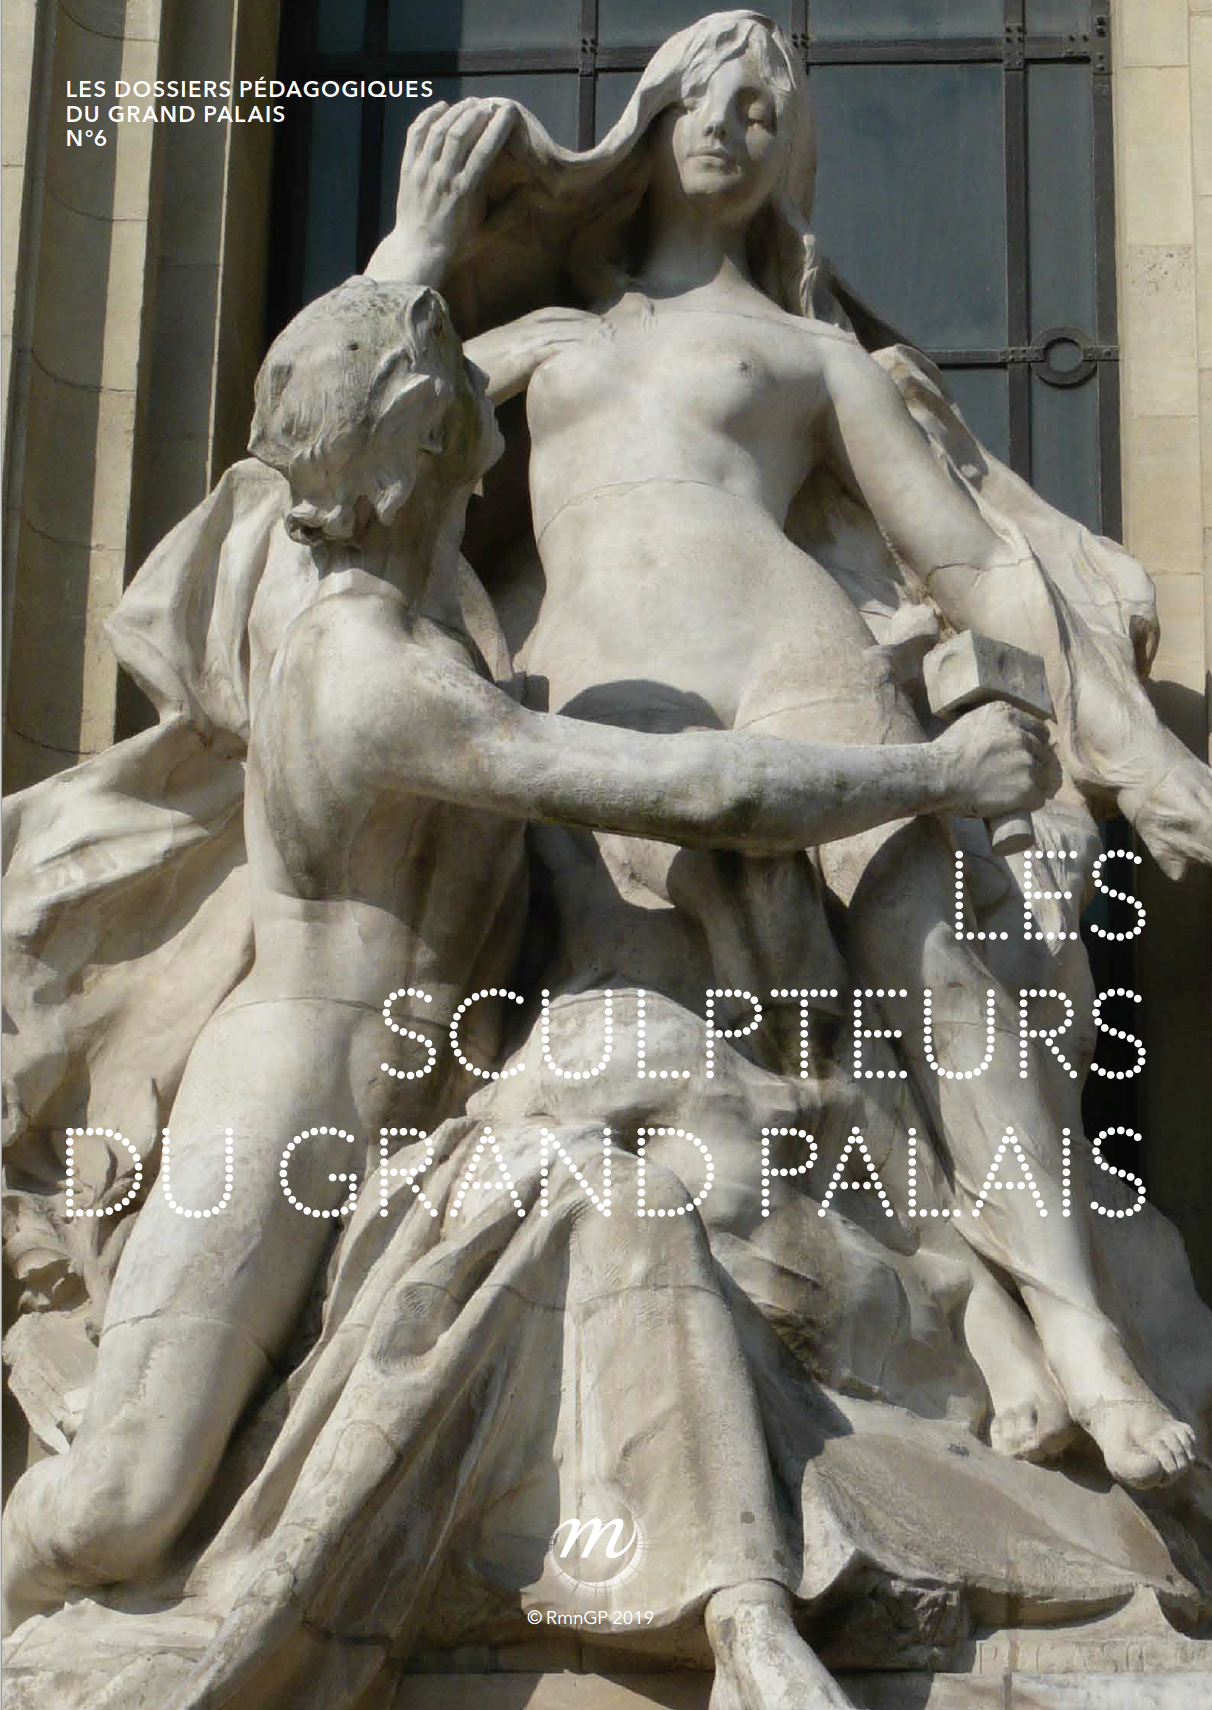 Les sculpteurs du Grand Palais